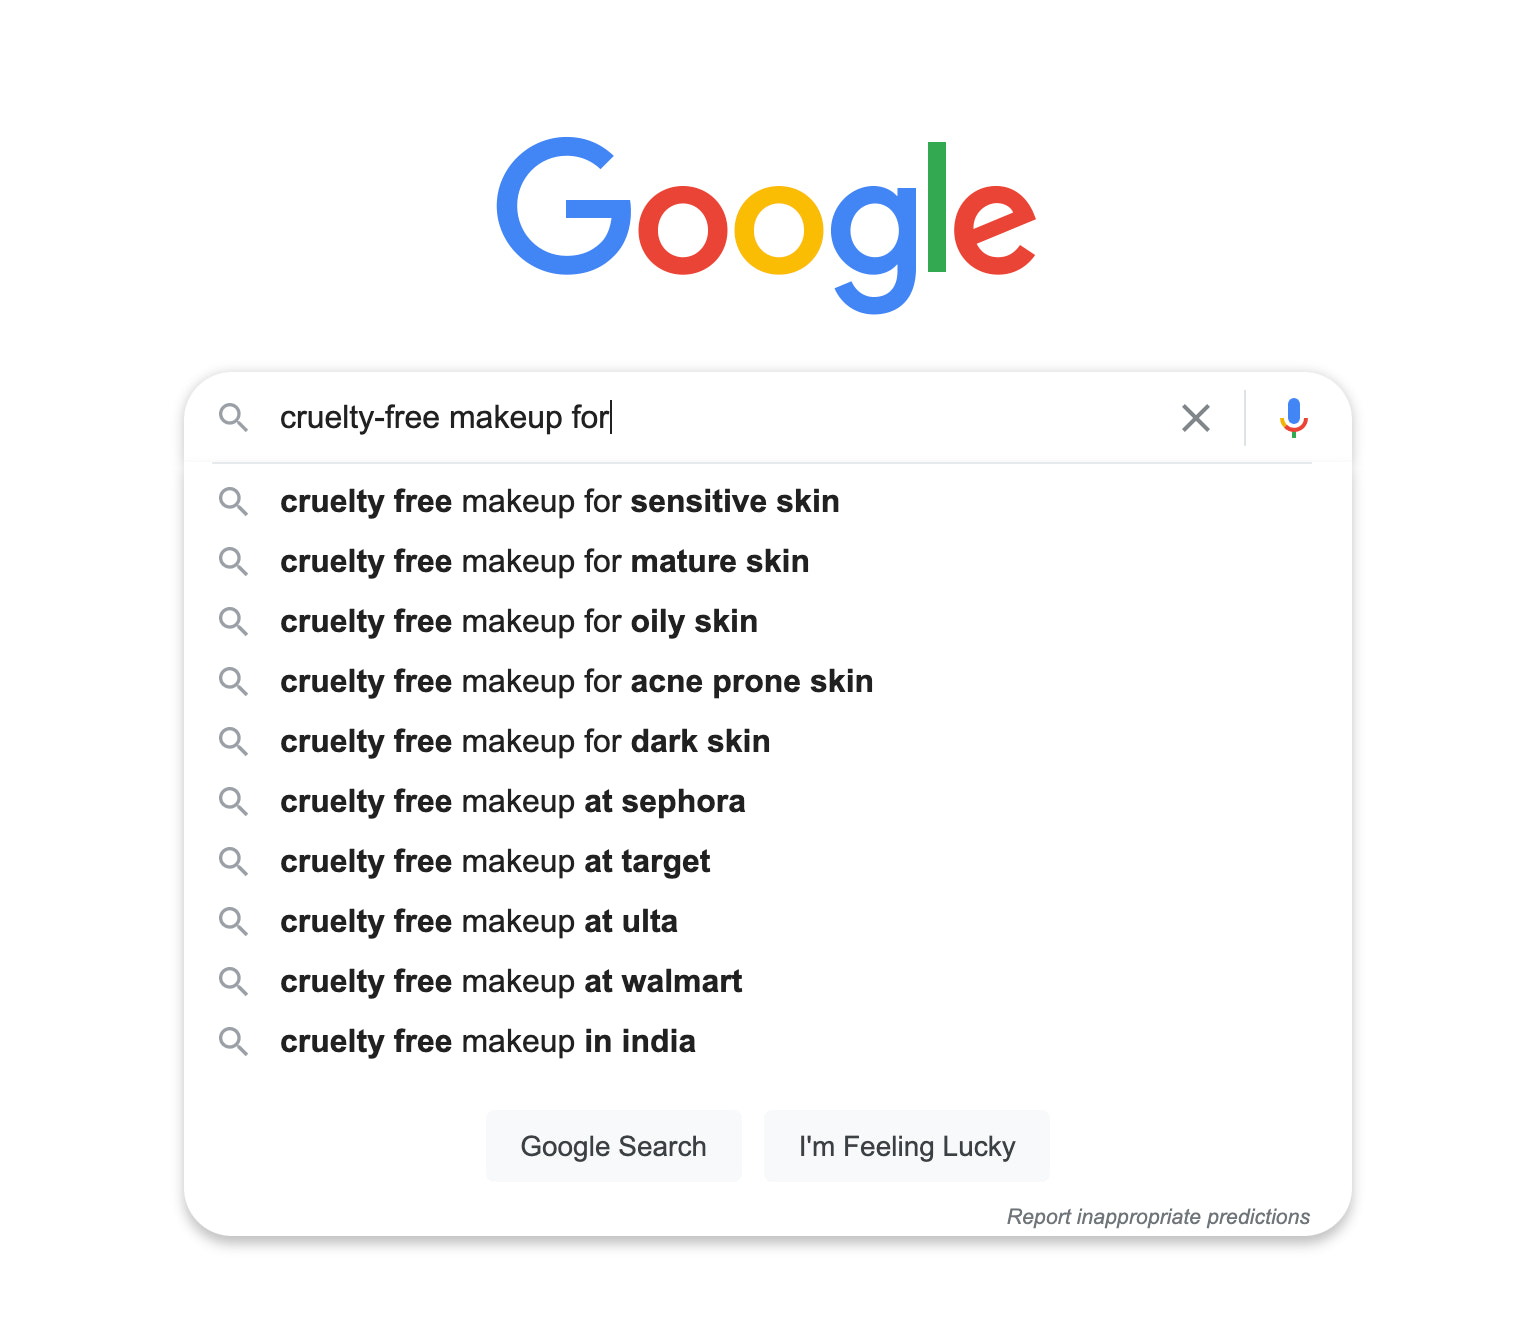 Google search for cruelty free makeup